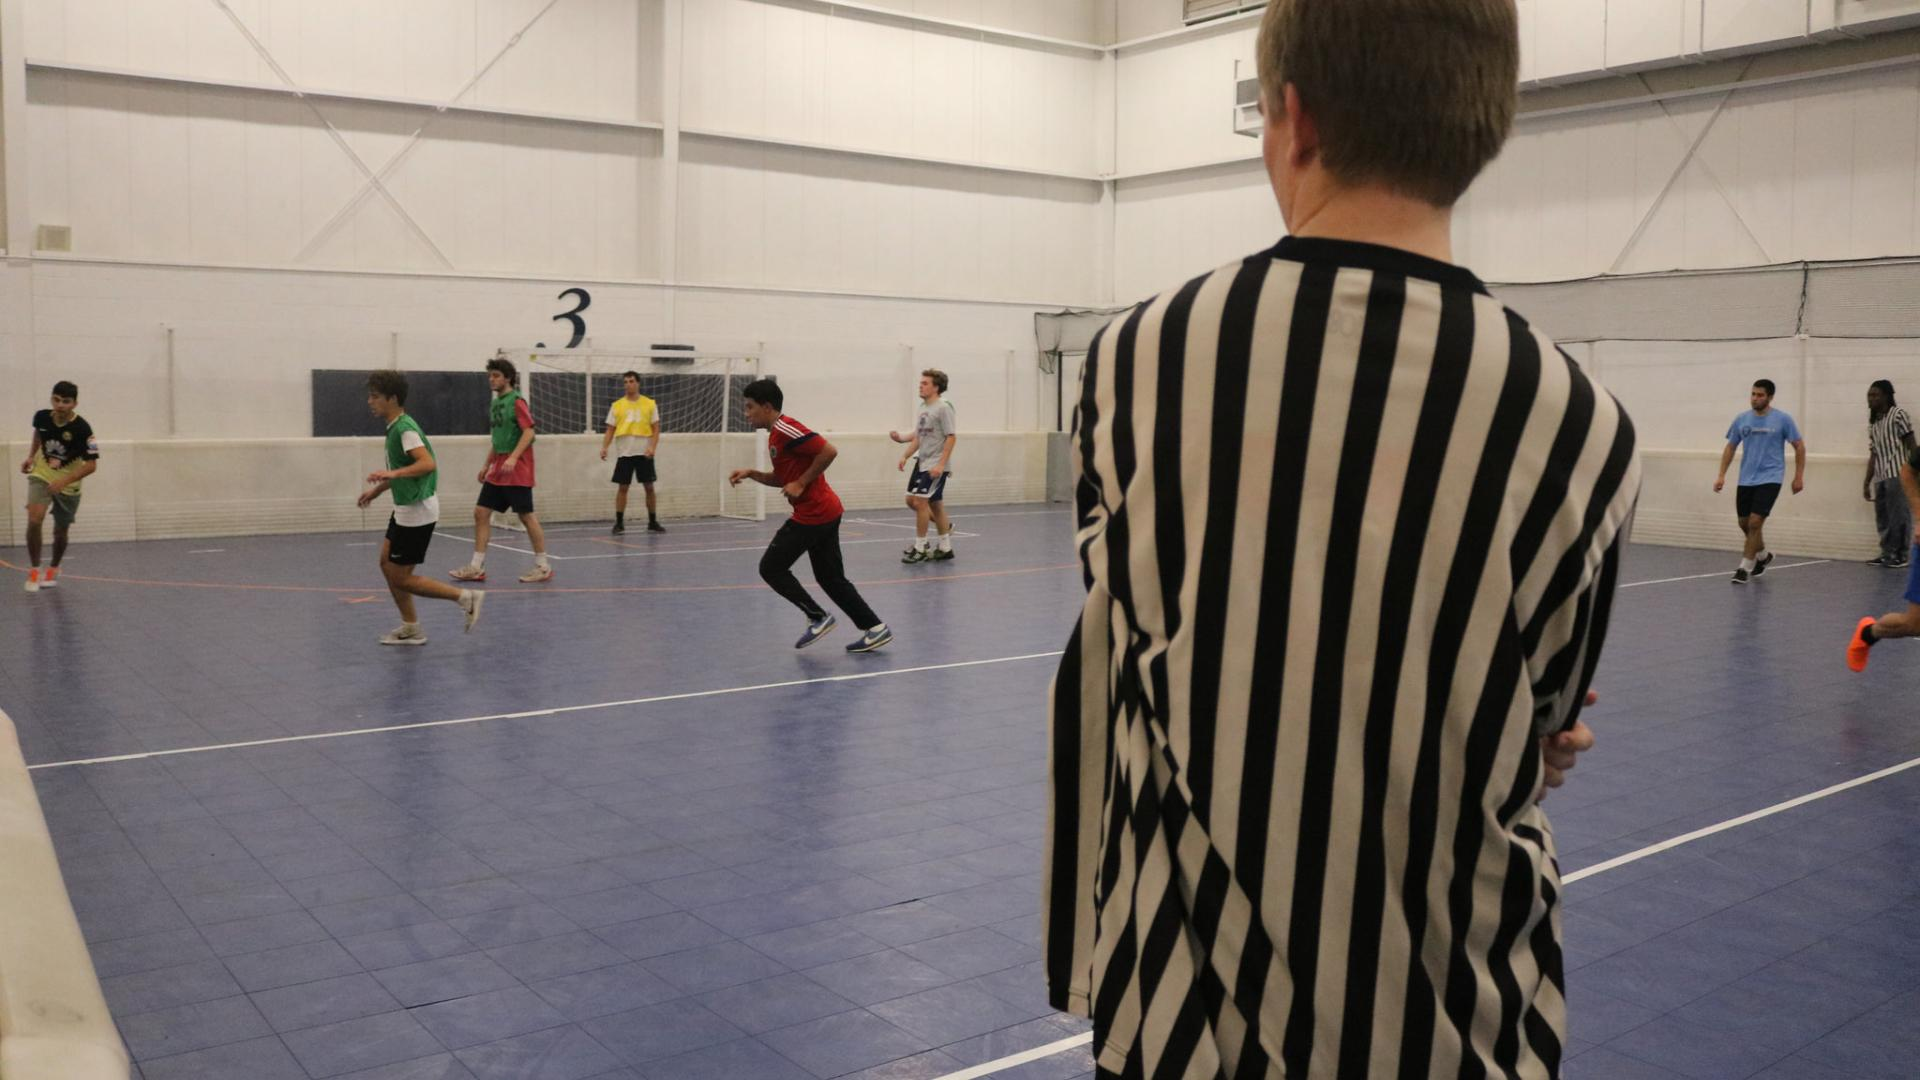 Intramural Sports at UVA